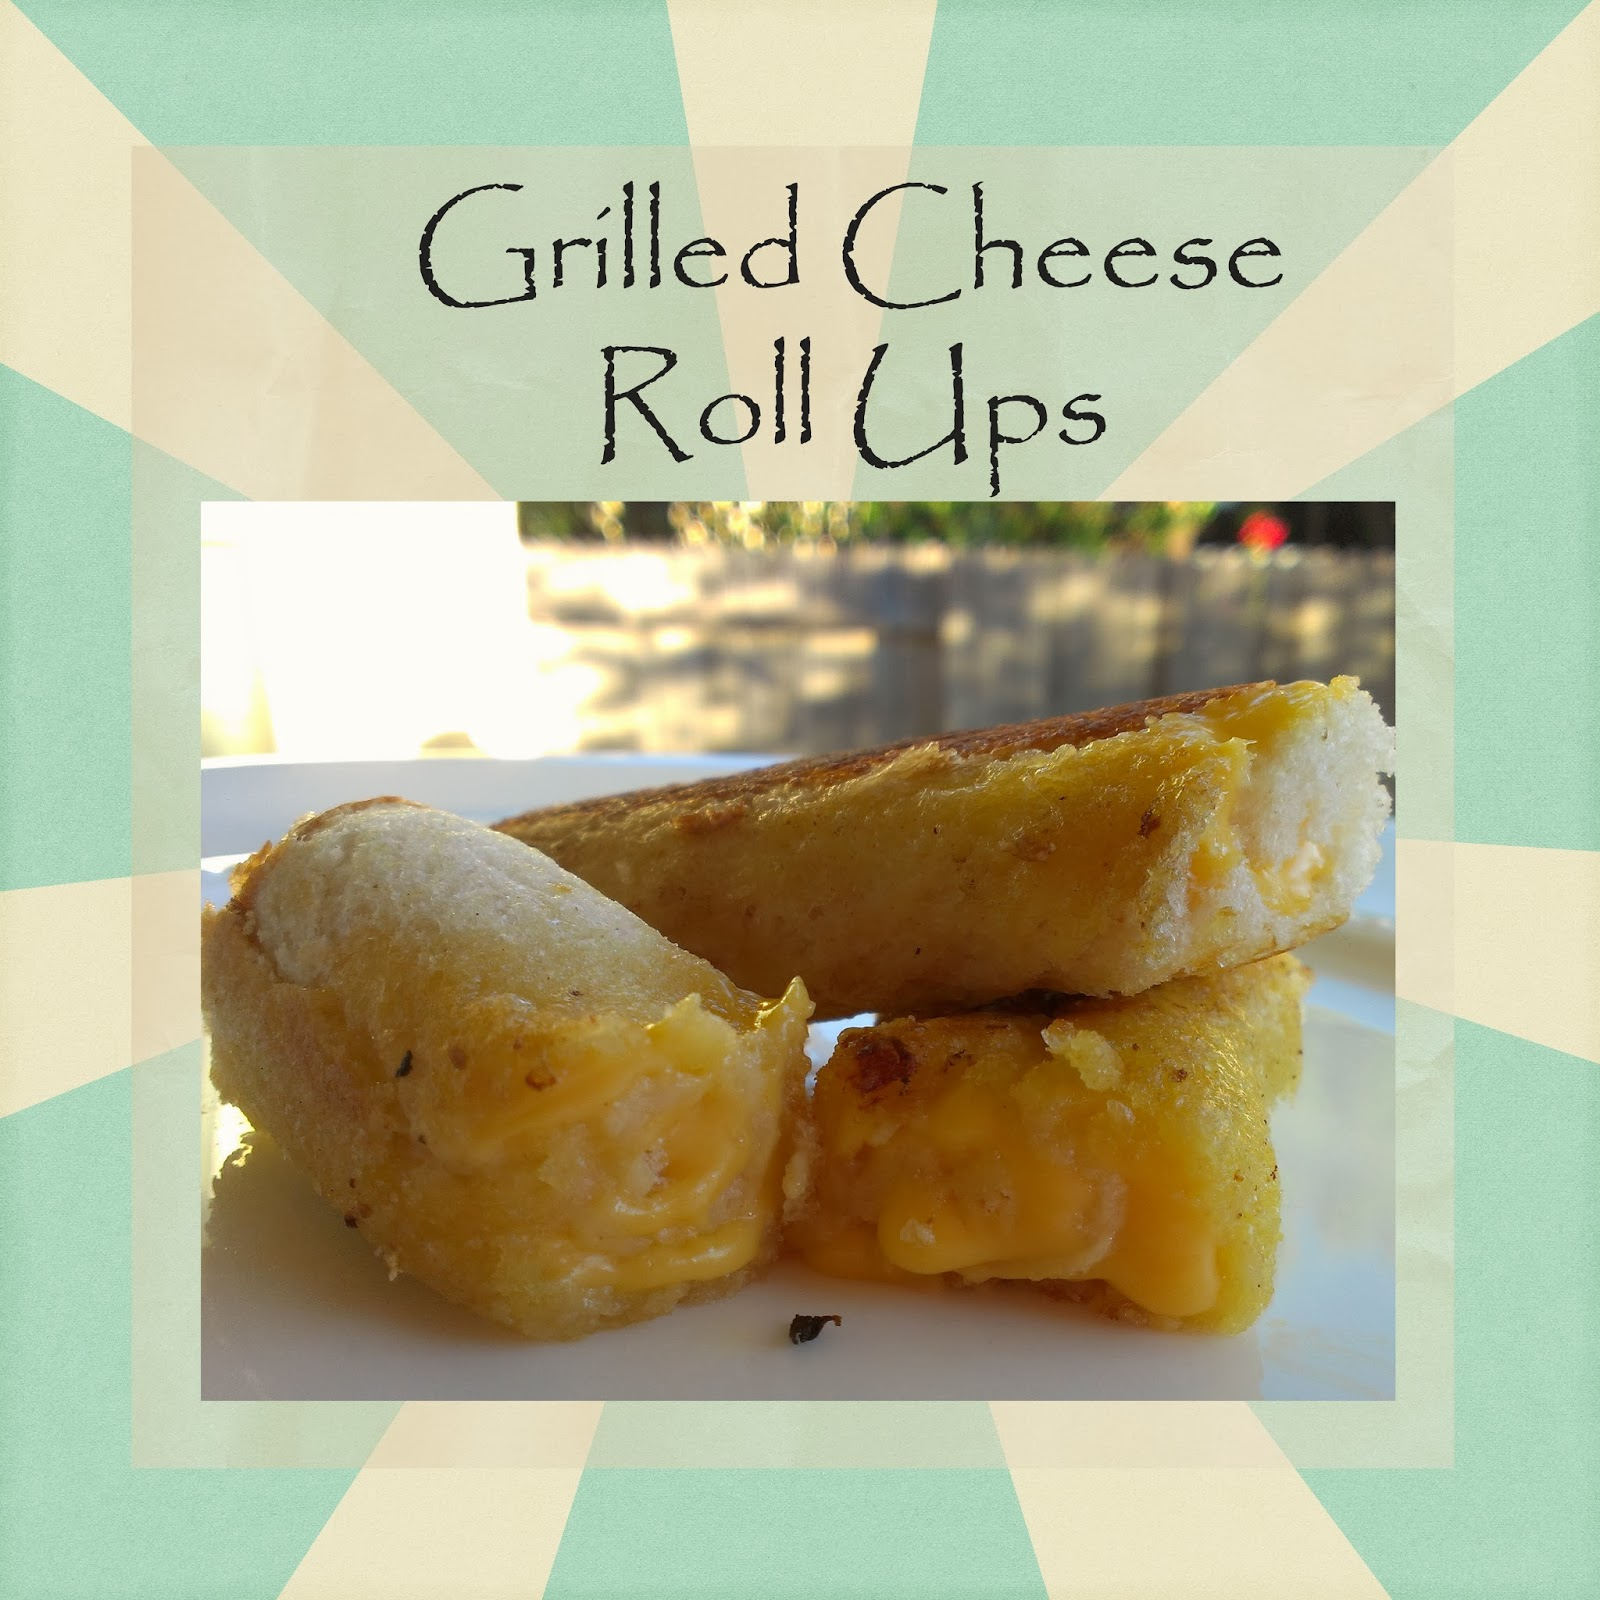 http://gloriouslymade.blogspot.com/2013/12/grilled-cheese-roll-ups.html